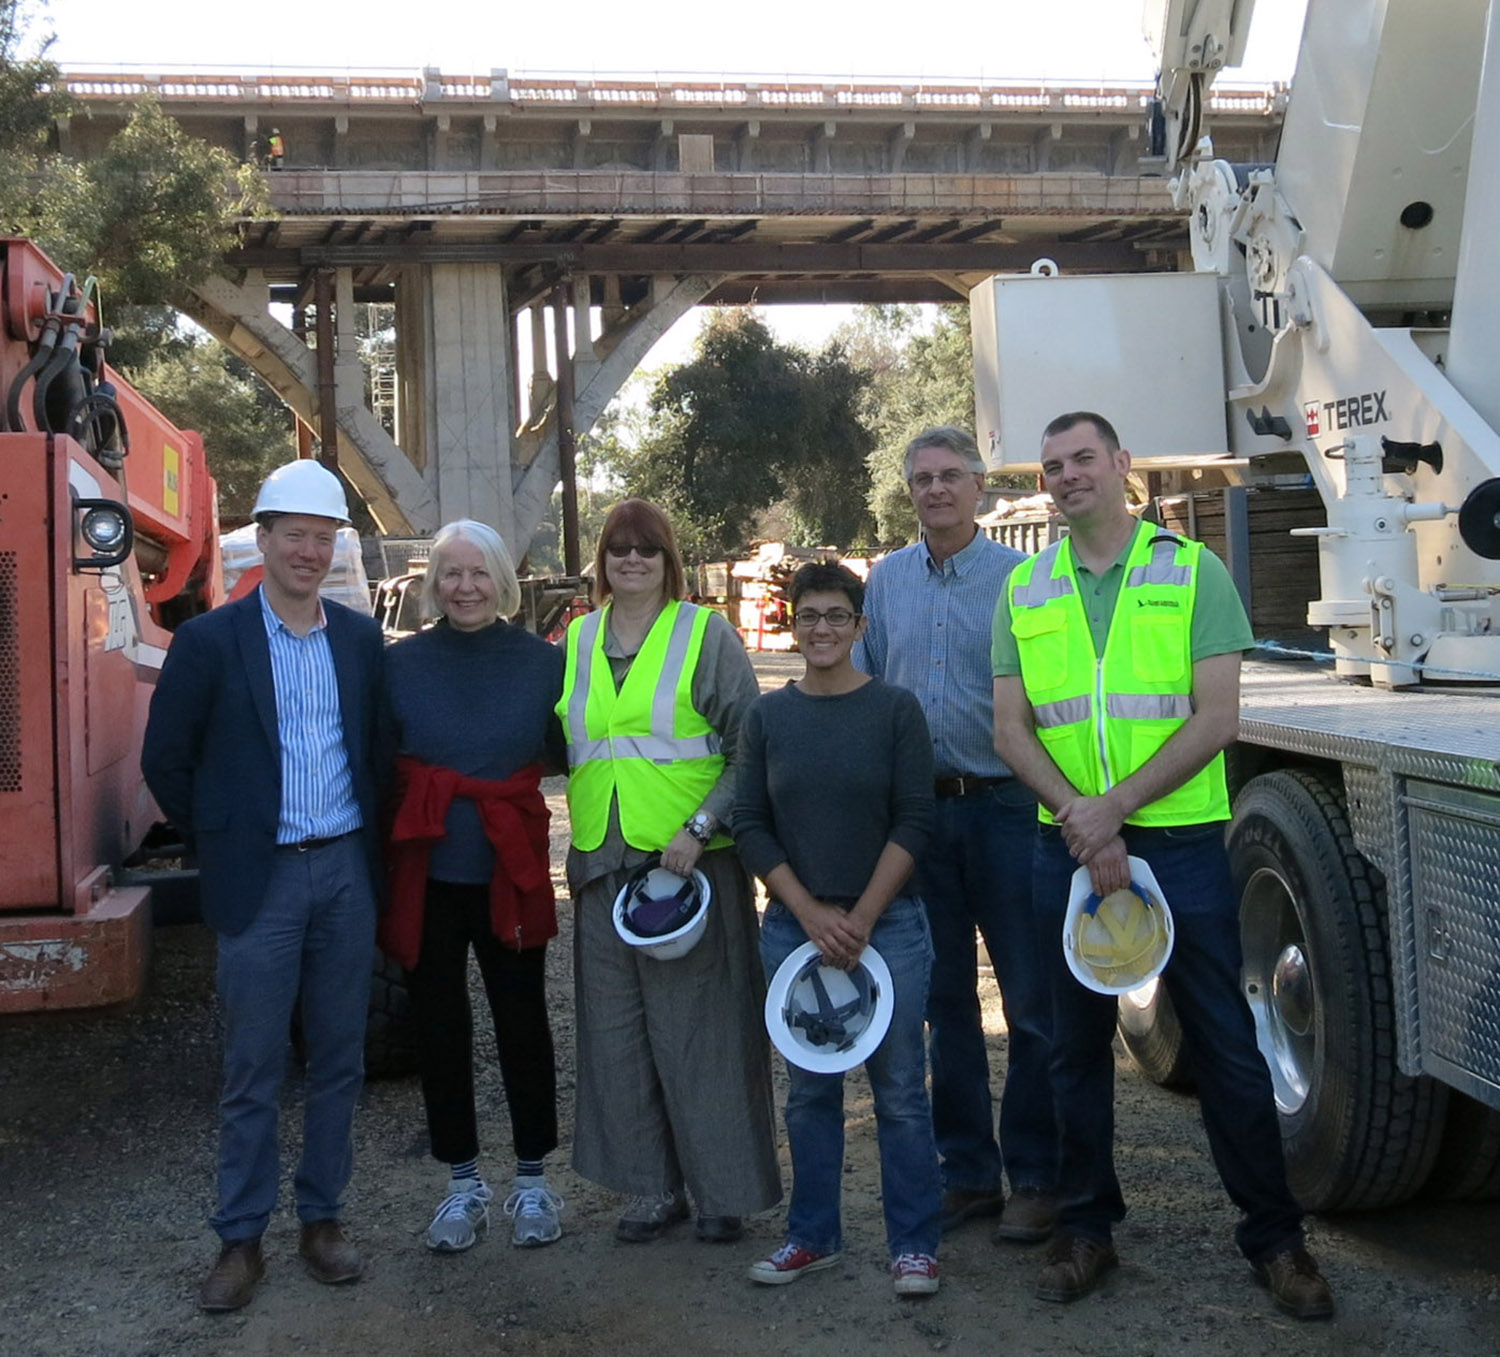 Members of DAG and the Pasadena Construction mgmt team